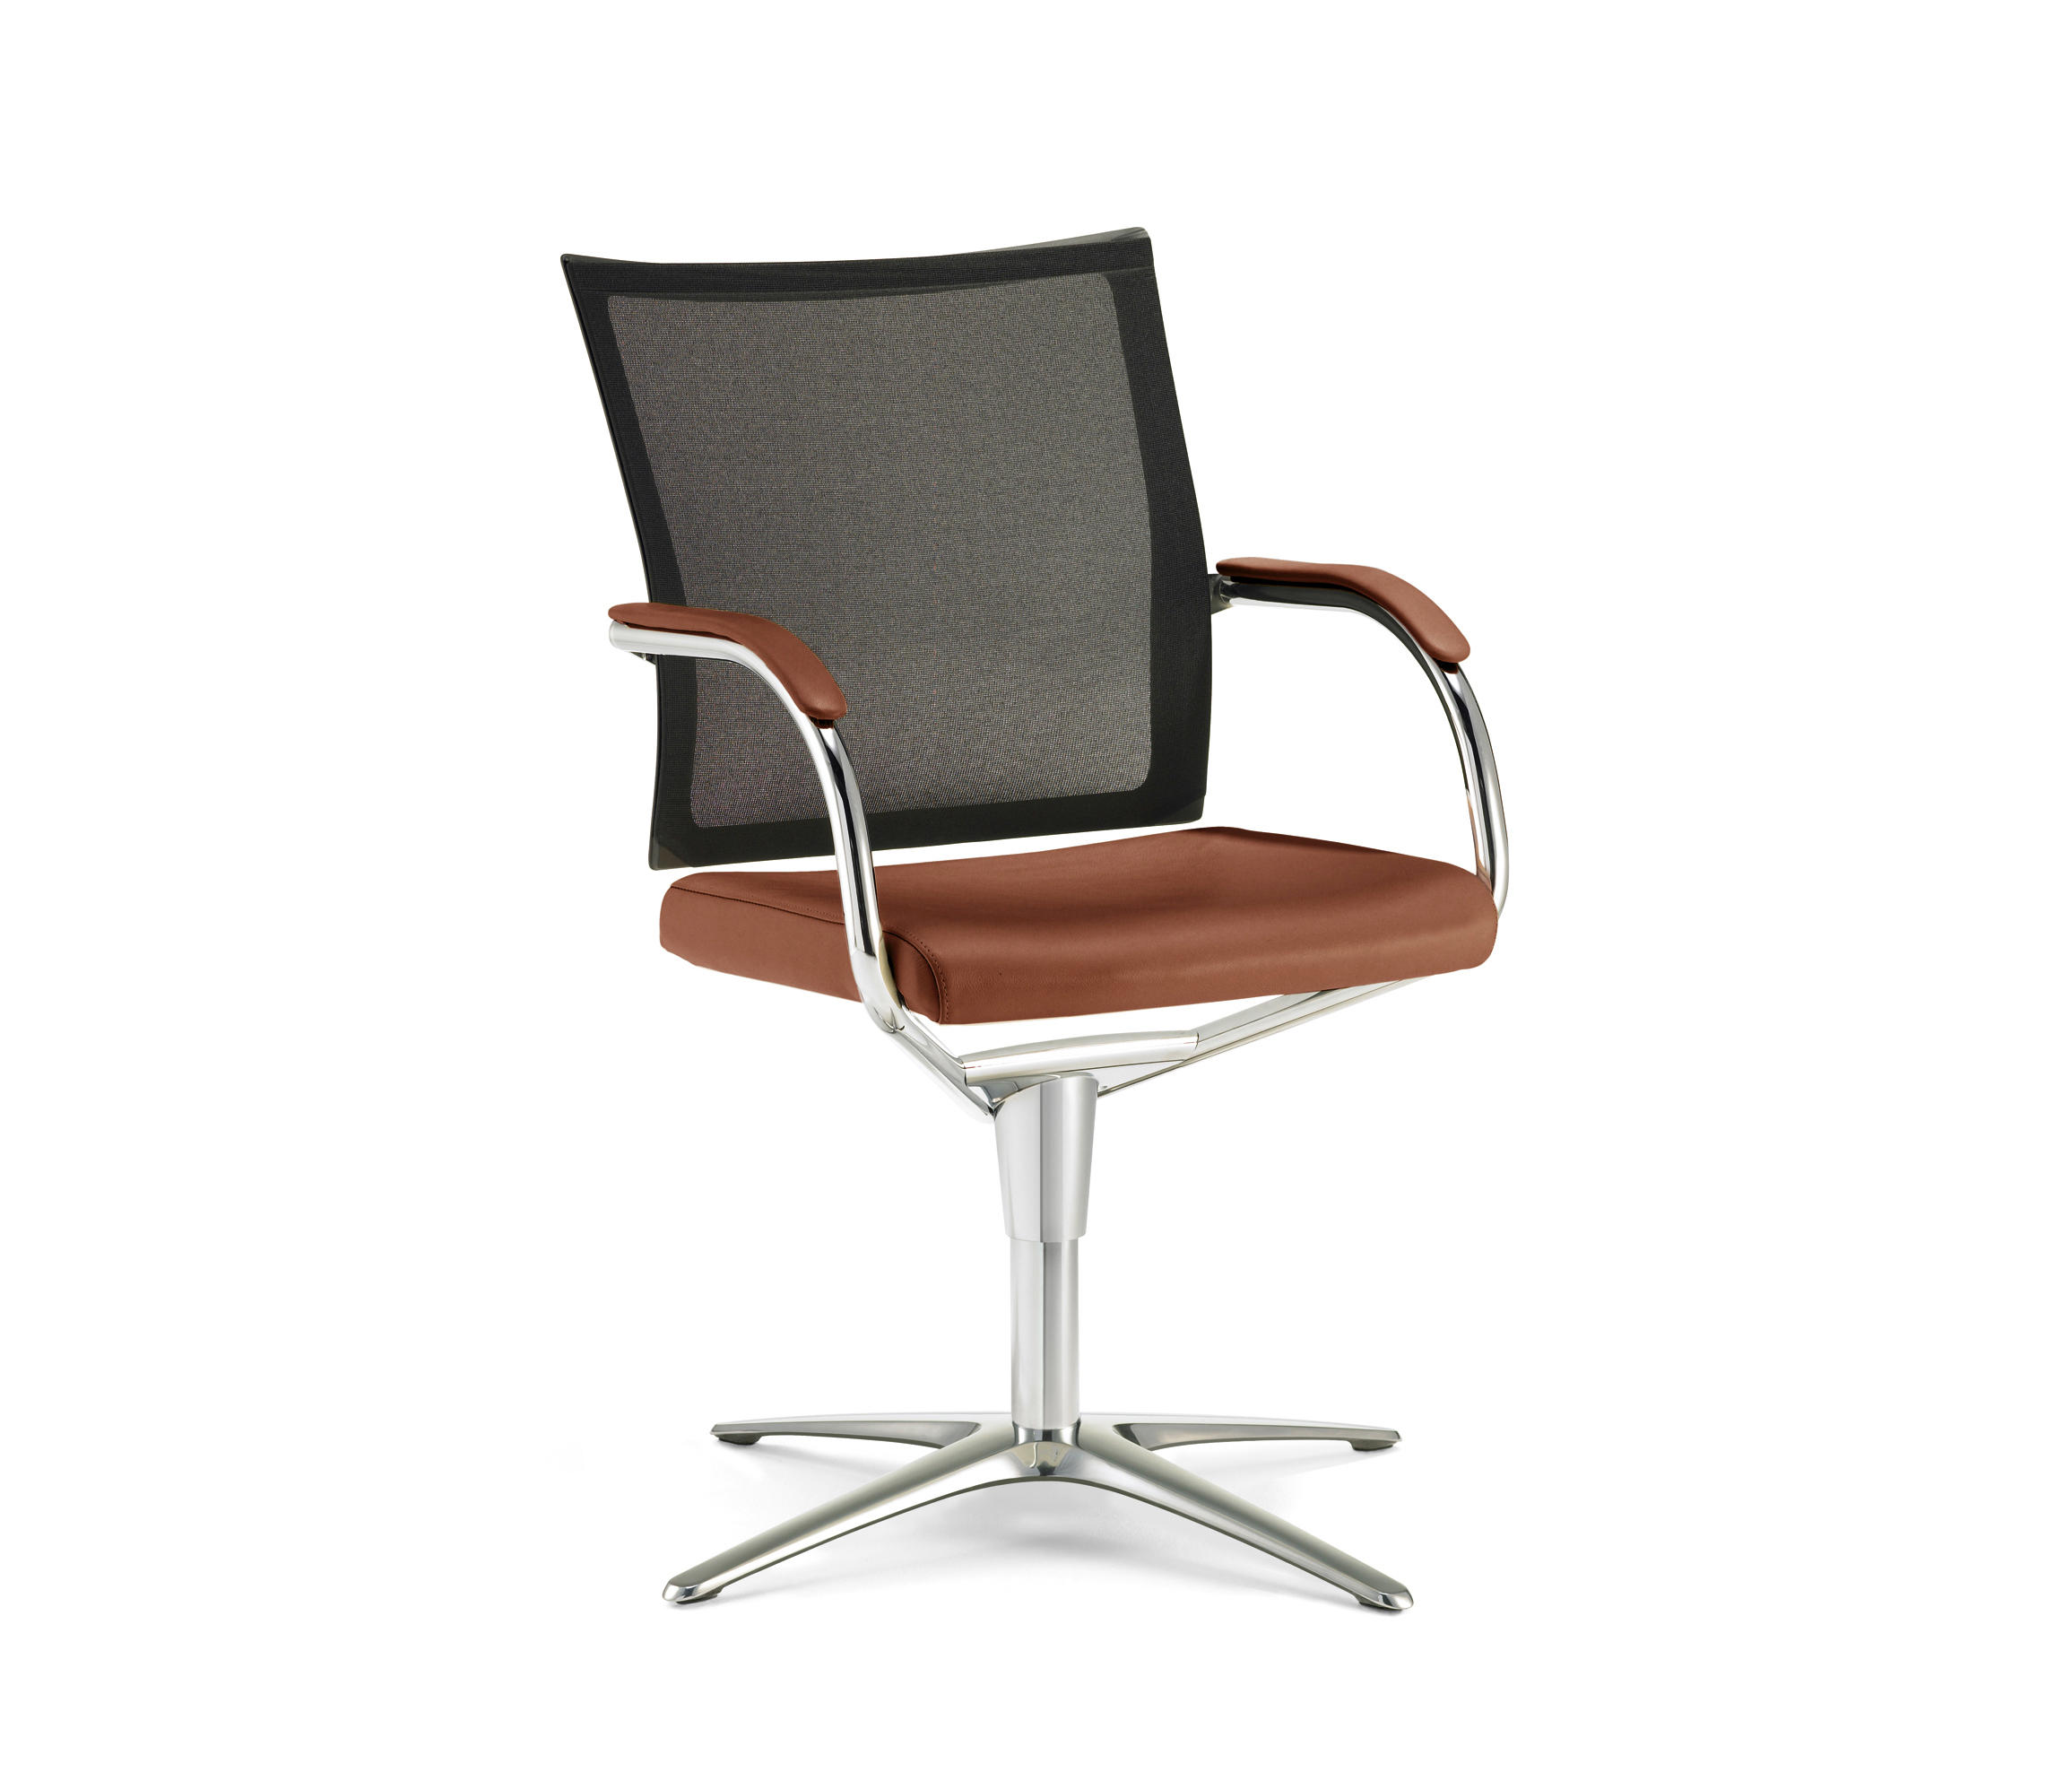 Superieur Orbit Network Conference Swivel Chair By Klöber | Chairs